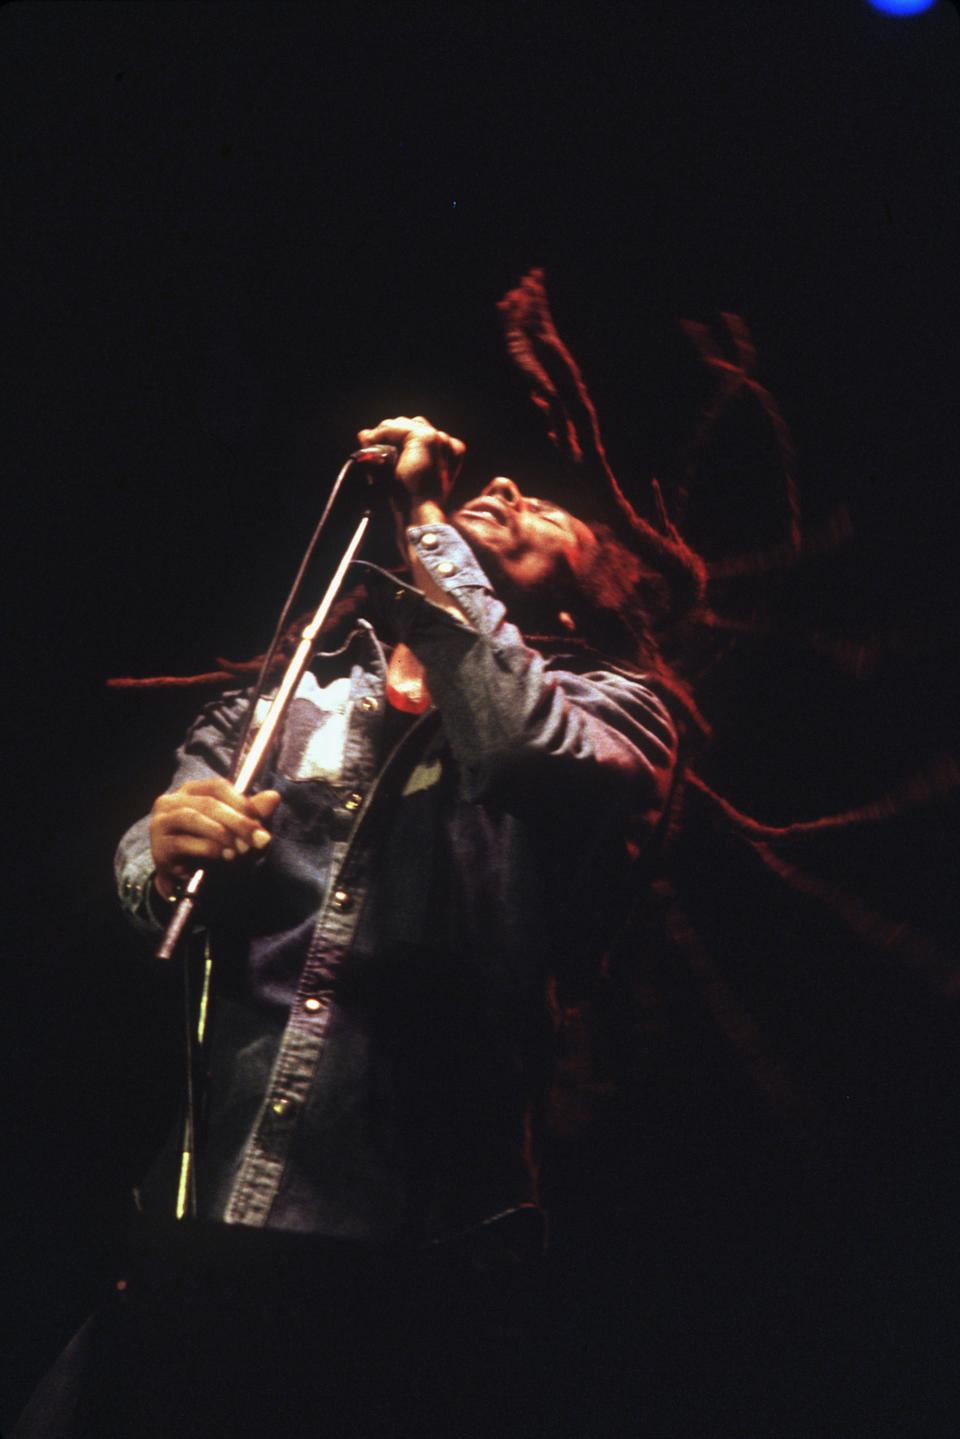 Jamaican reggae singer Bob Marley gives the last concert of his French tour at Le Bourget. The event was the biggest concert France has ever seen. (Photo by © Jacques Pavlovsky/Sygma/CORBIS/Sygma via Getty Images)